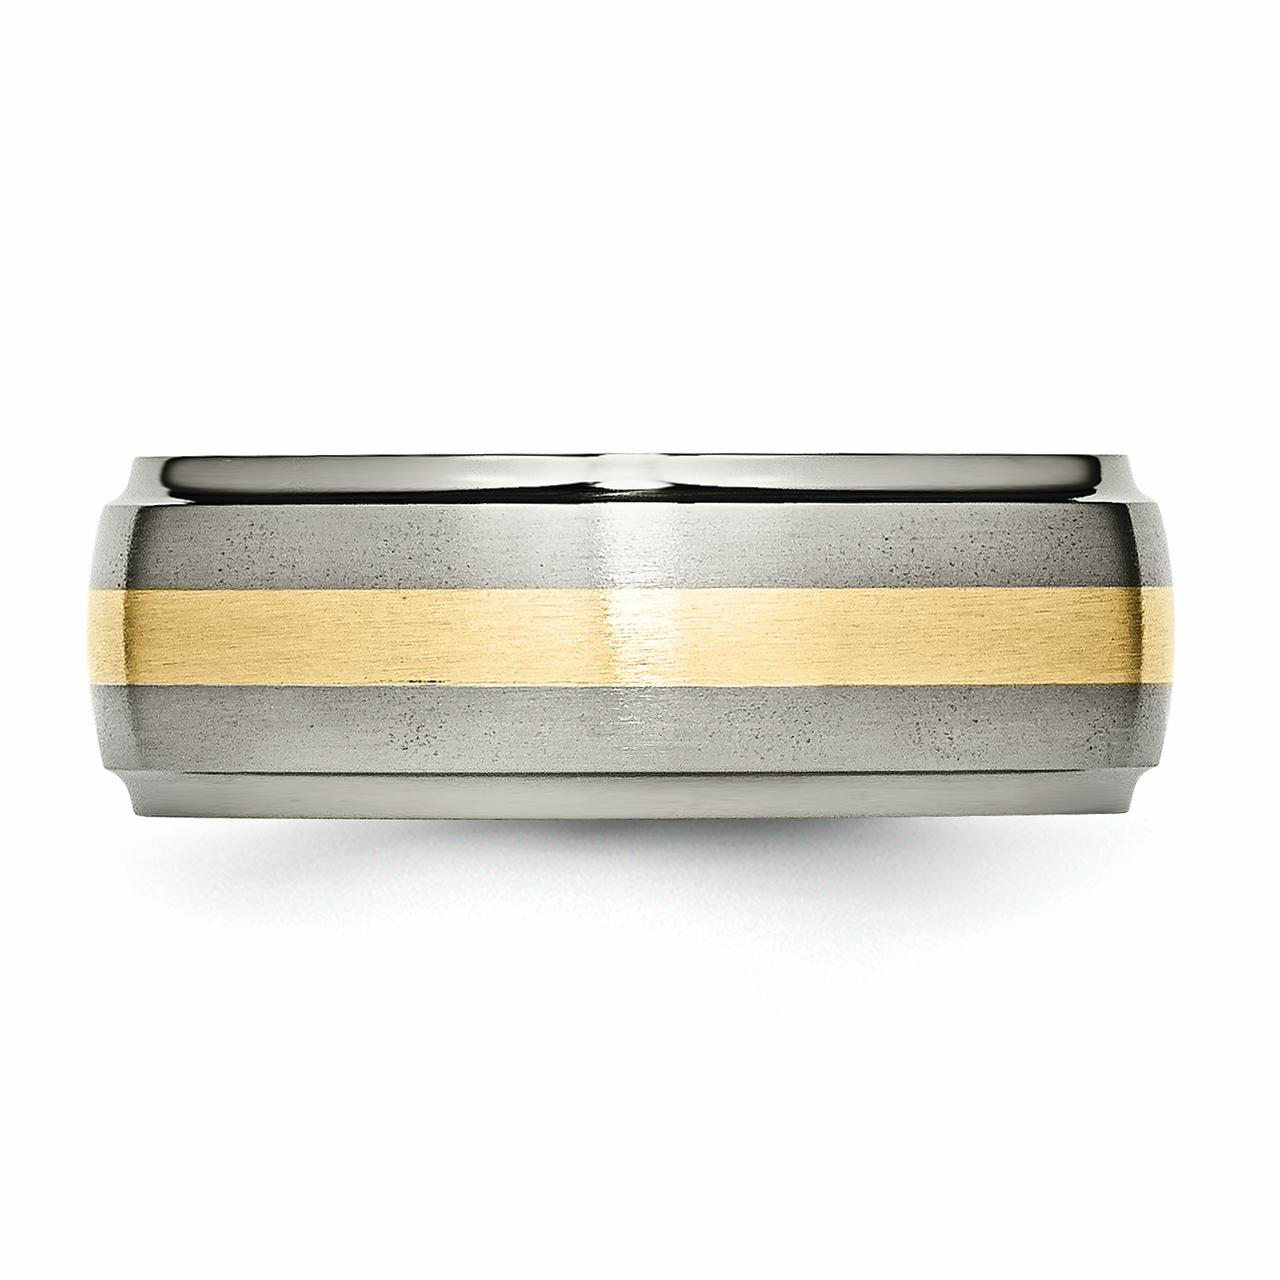 Titanium Ridged Edge 14k Yellow Inlay 8mm Brushed/ Wedding Ring Band Size 9.50 Precious Metal Fine Jewelry Gifts For Women For Her - image 3 de 6